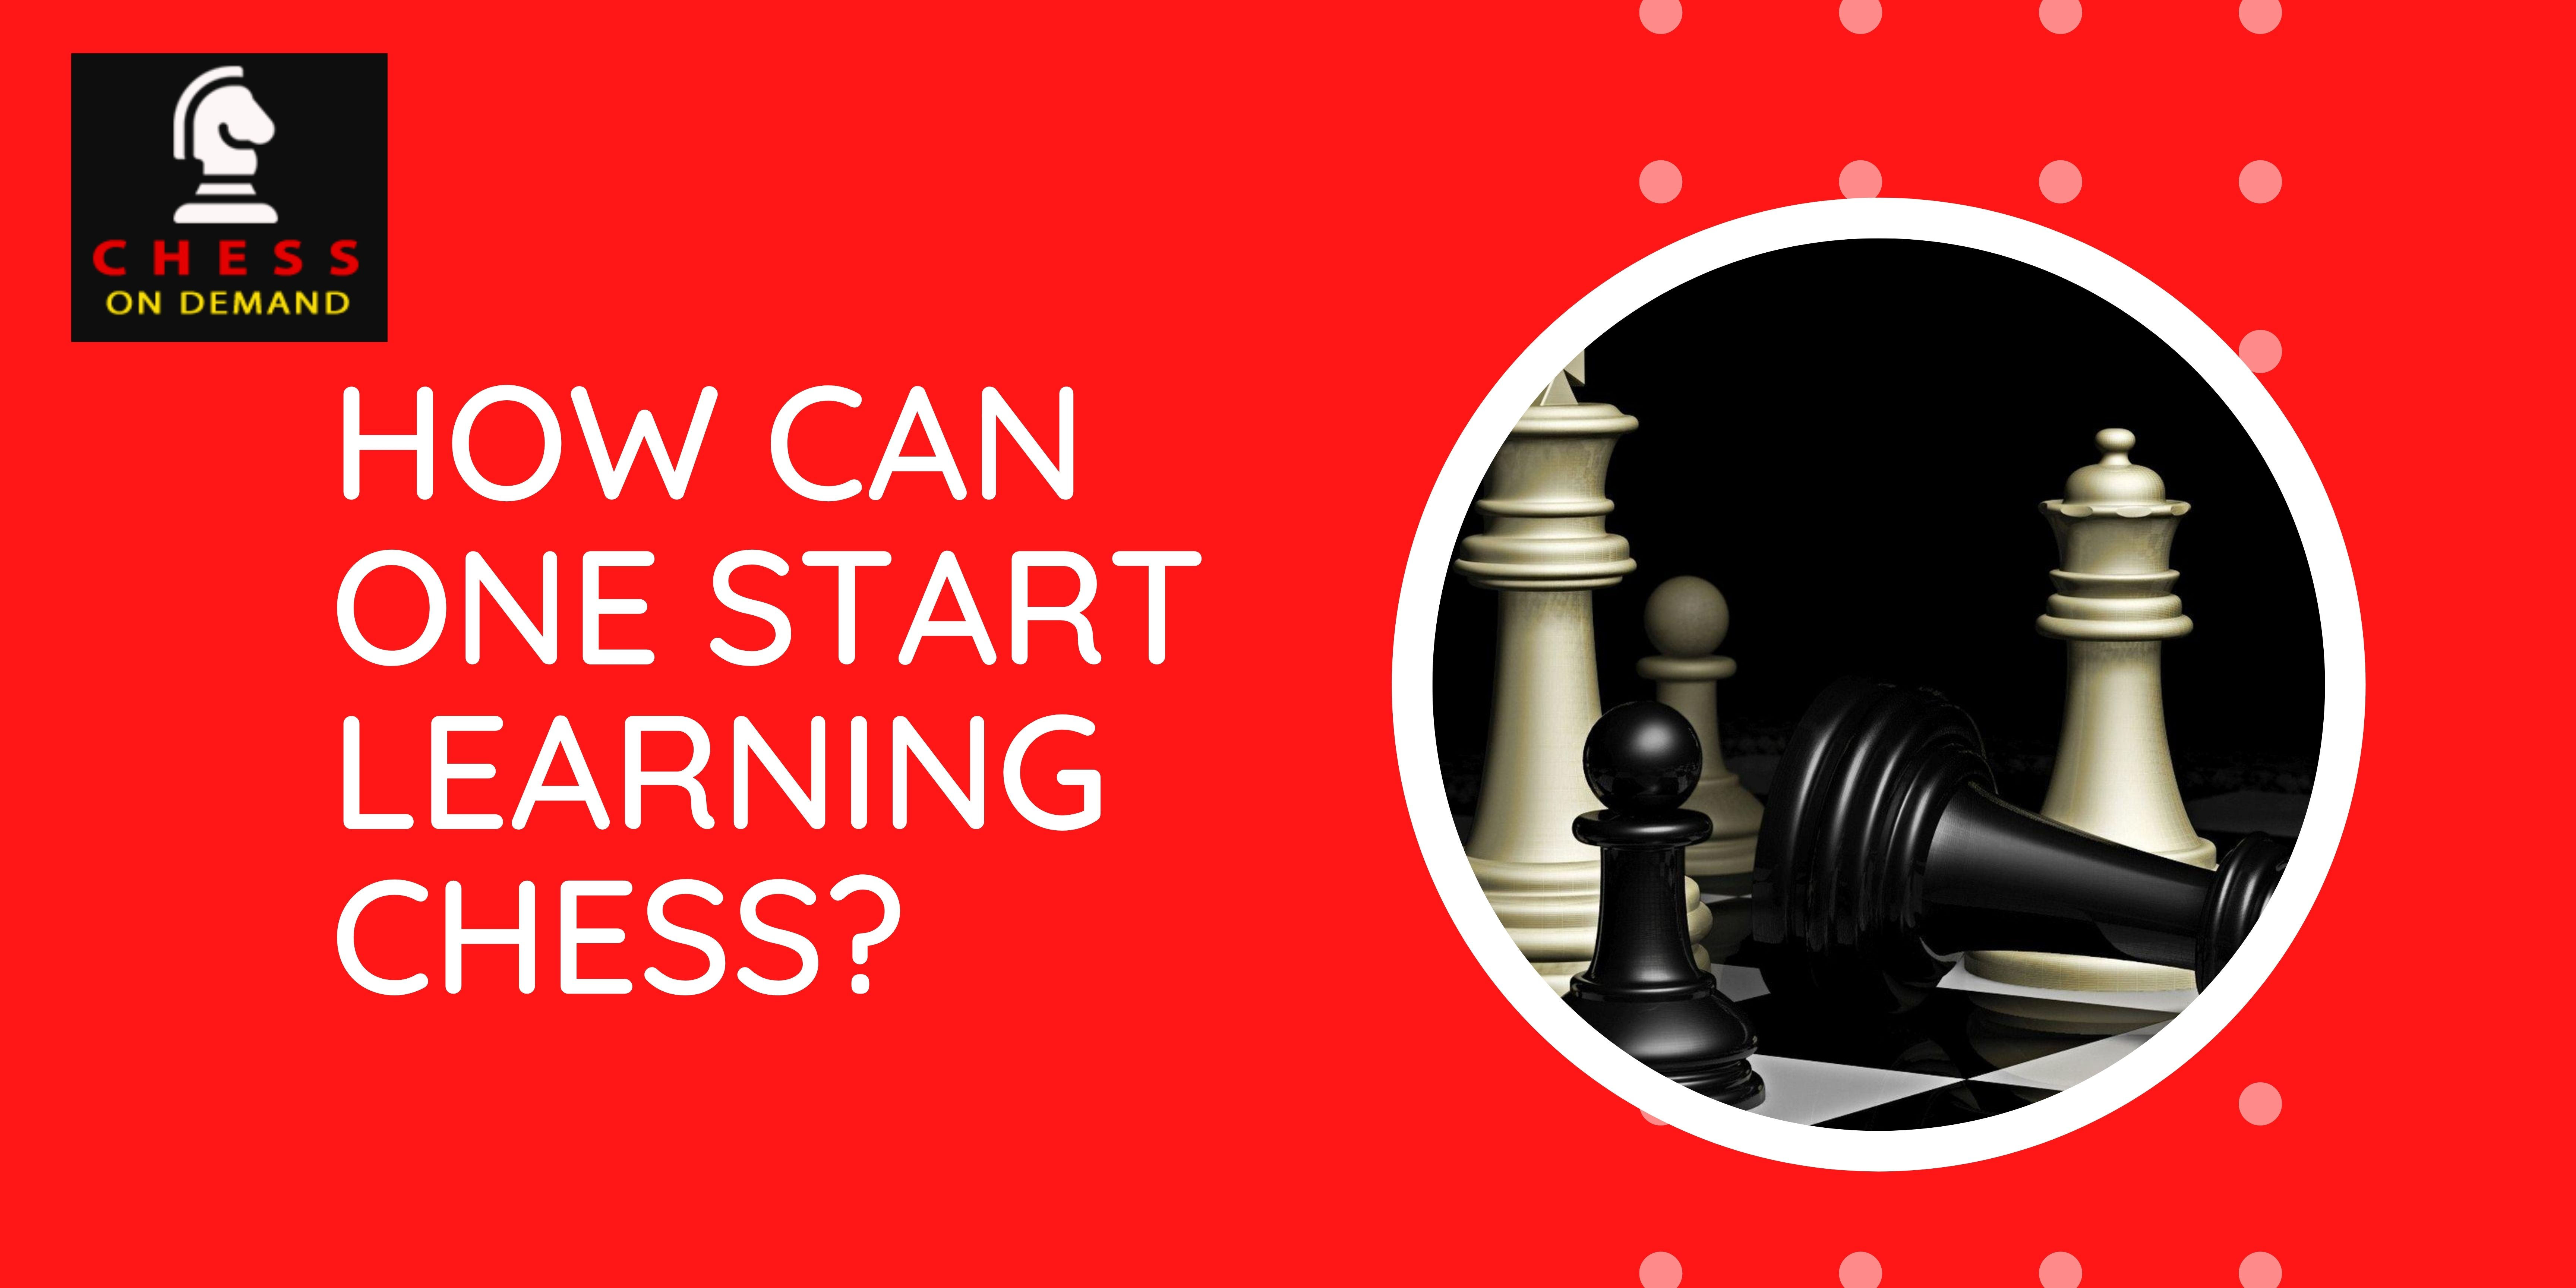 How can one start learning Chess? | Chessondemand